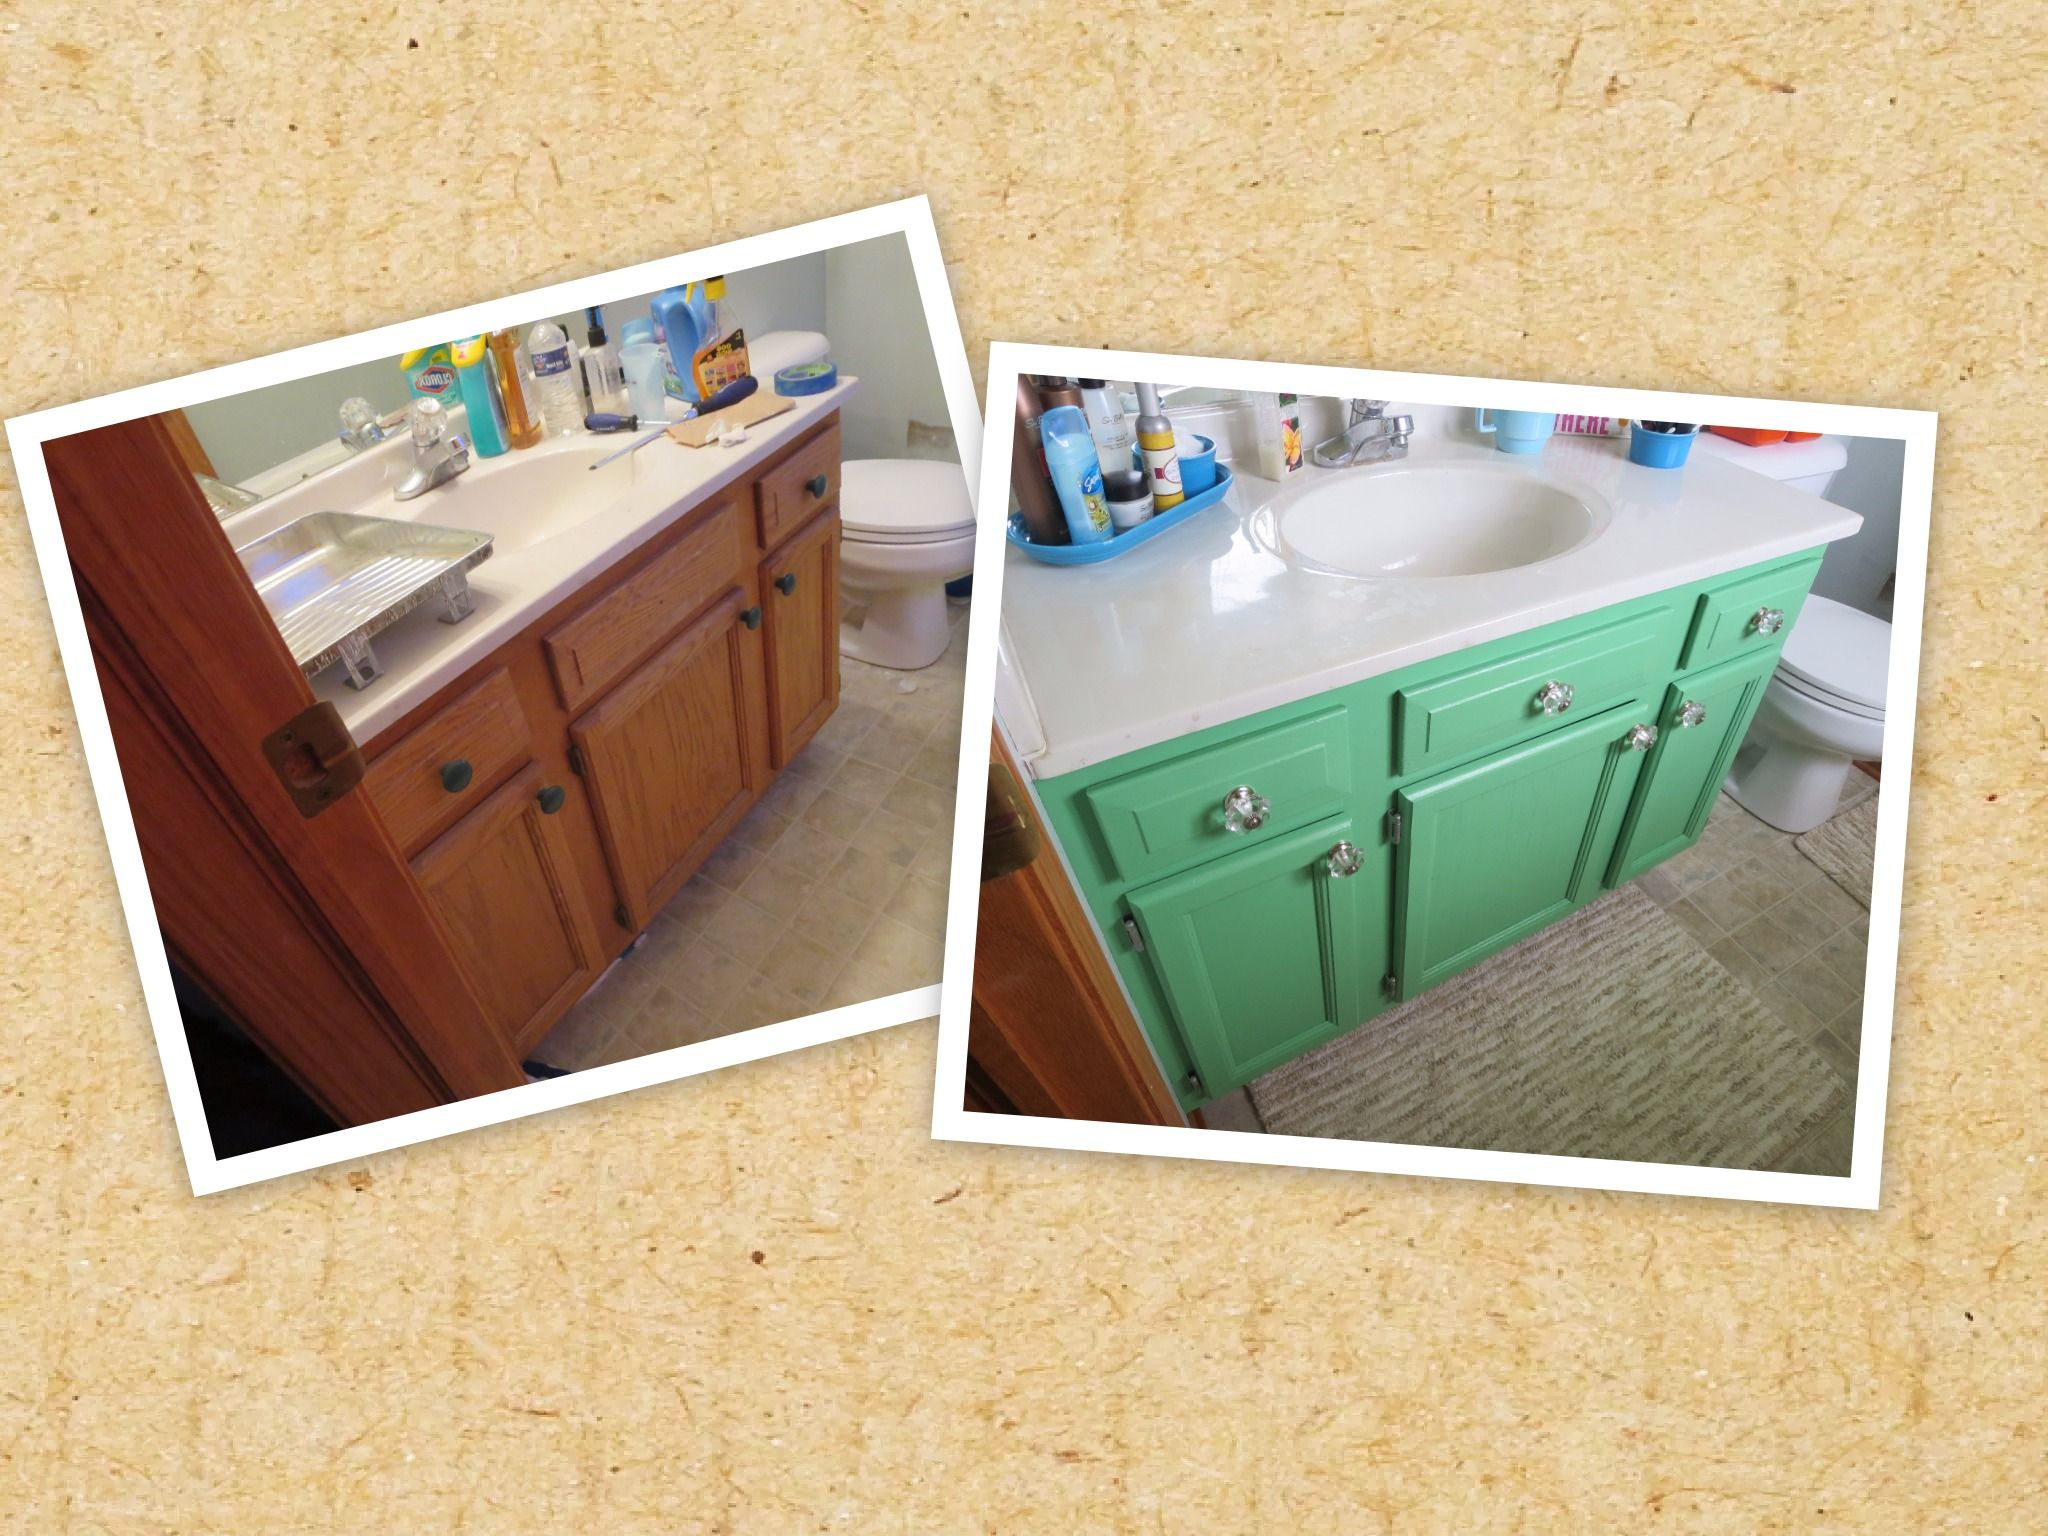 Builder Grade Oak Cabinet Painted In Benjamin Moore Aurora Borealis And Sealed With Gene Trendy Bathroom Tiles Best Bathroom Paint Colors Bathroom Paint Colors